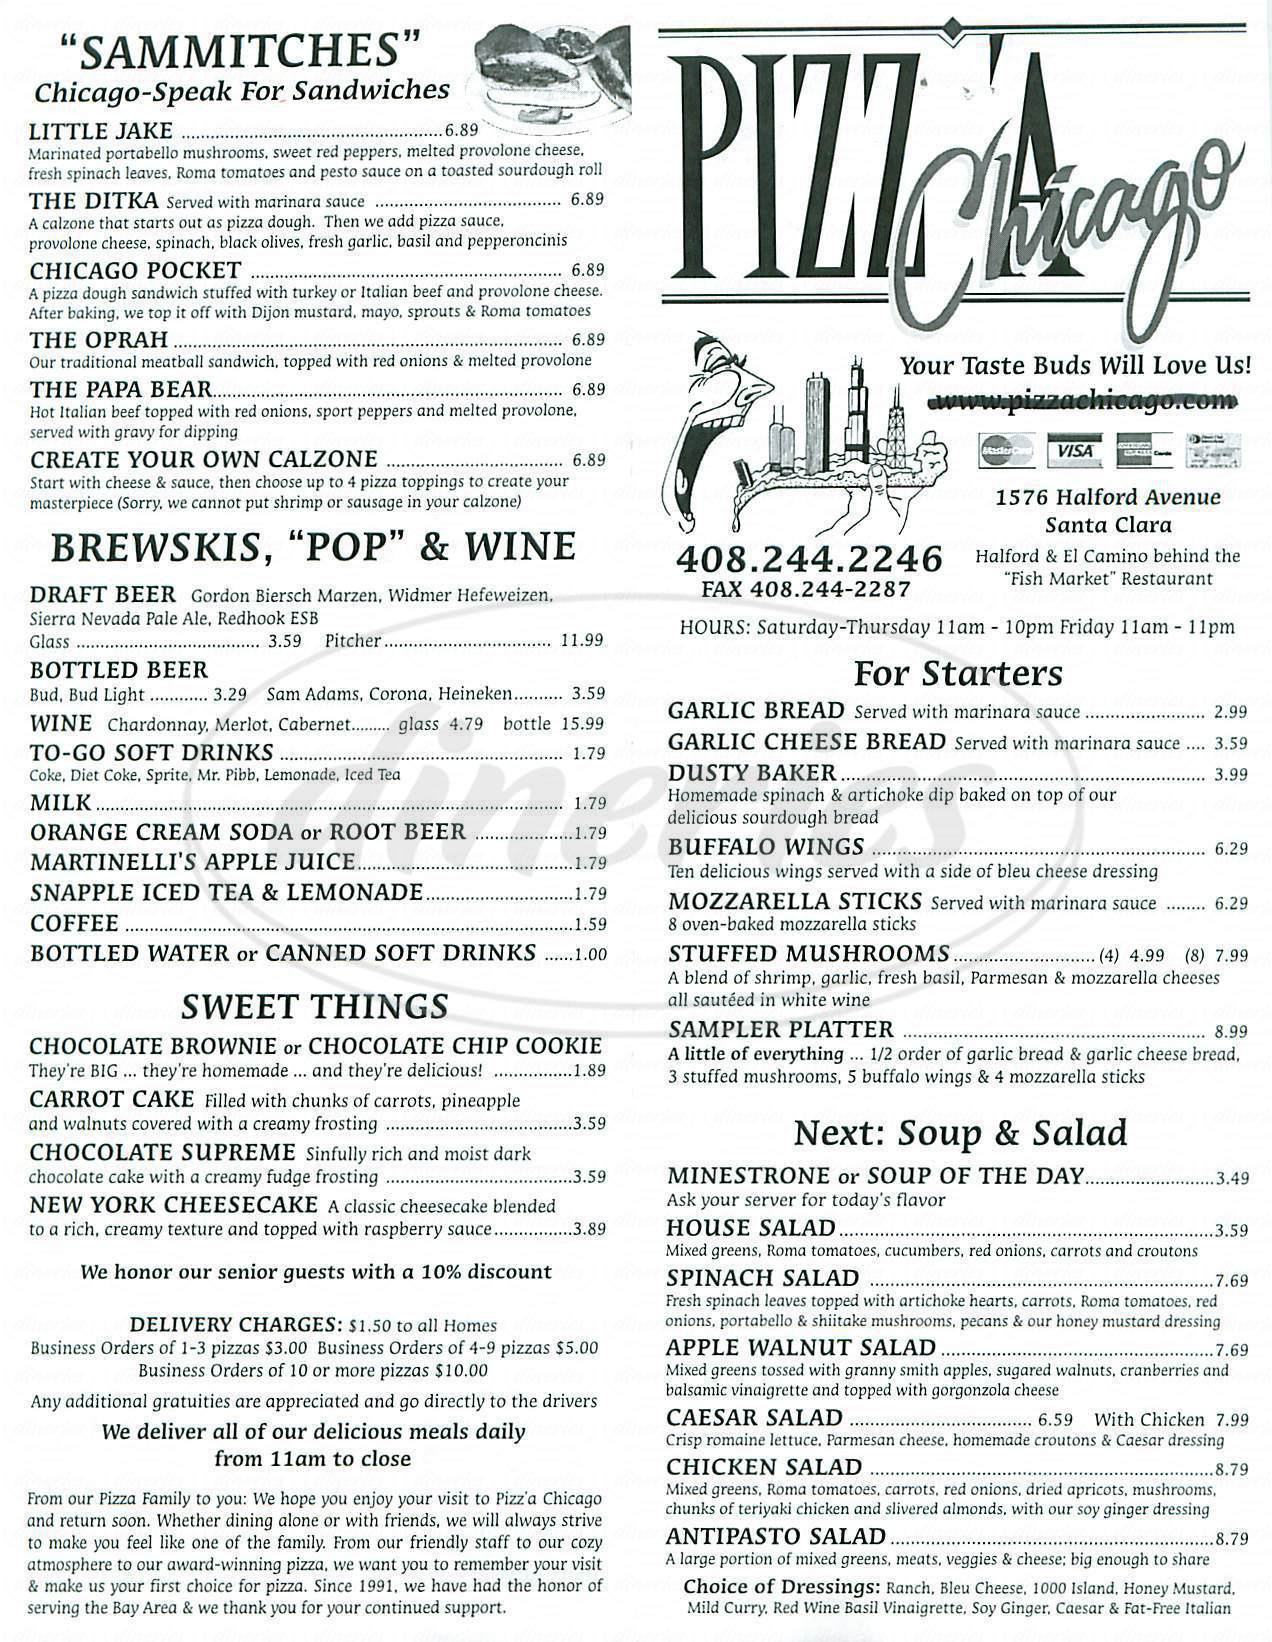 menu for Pizza Chicago